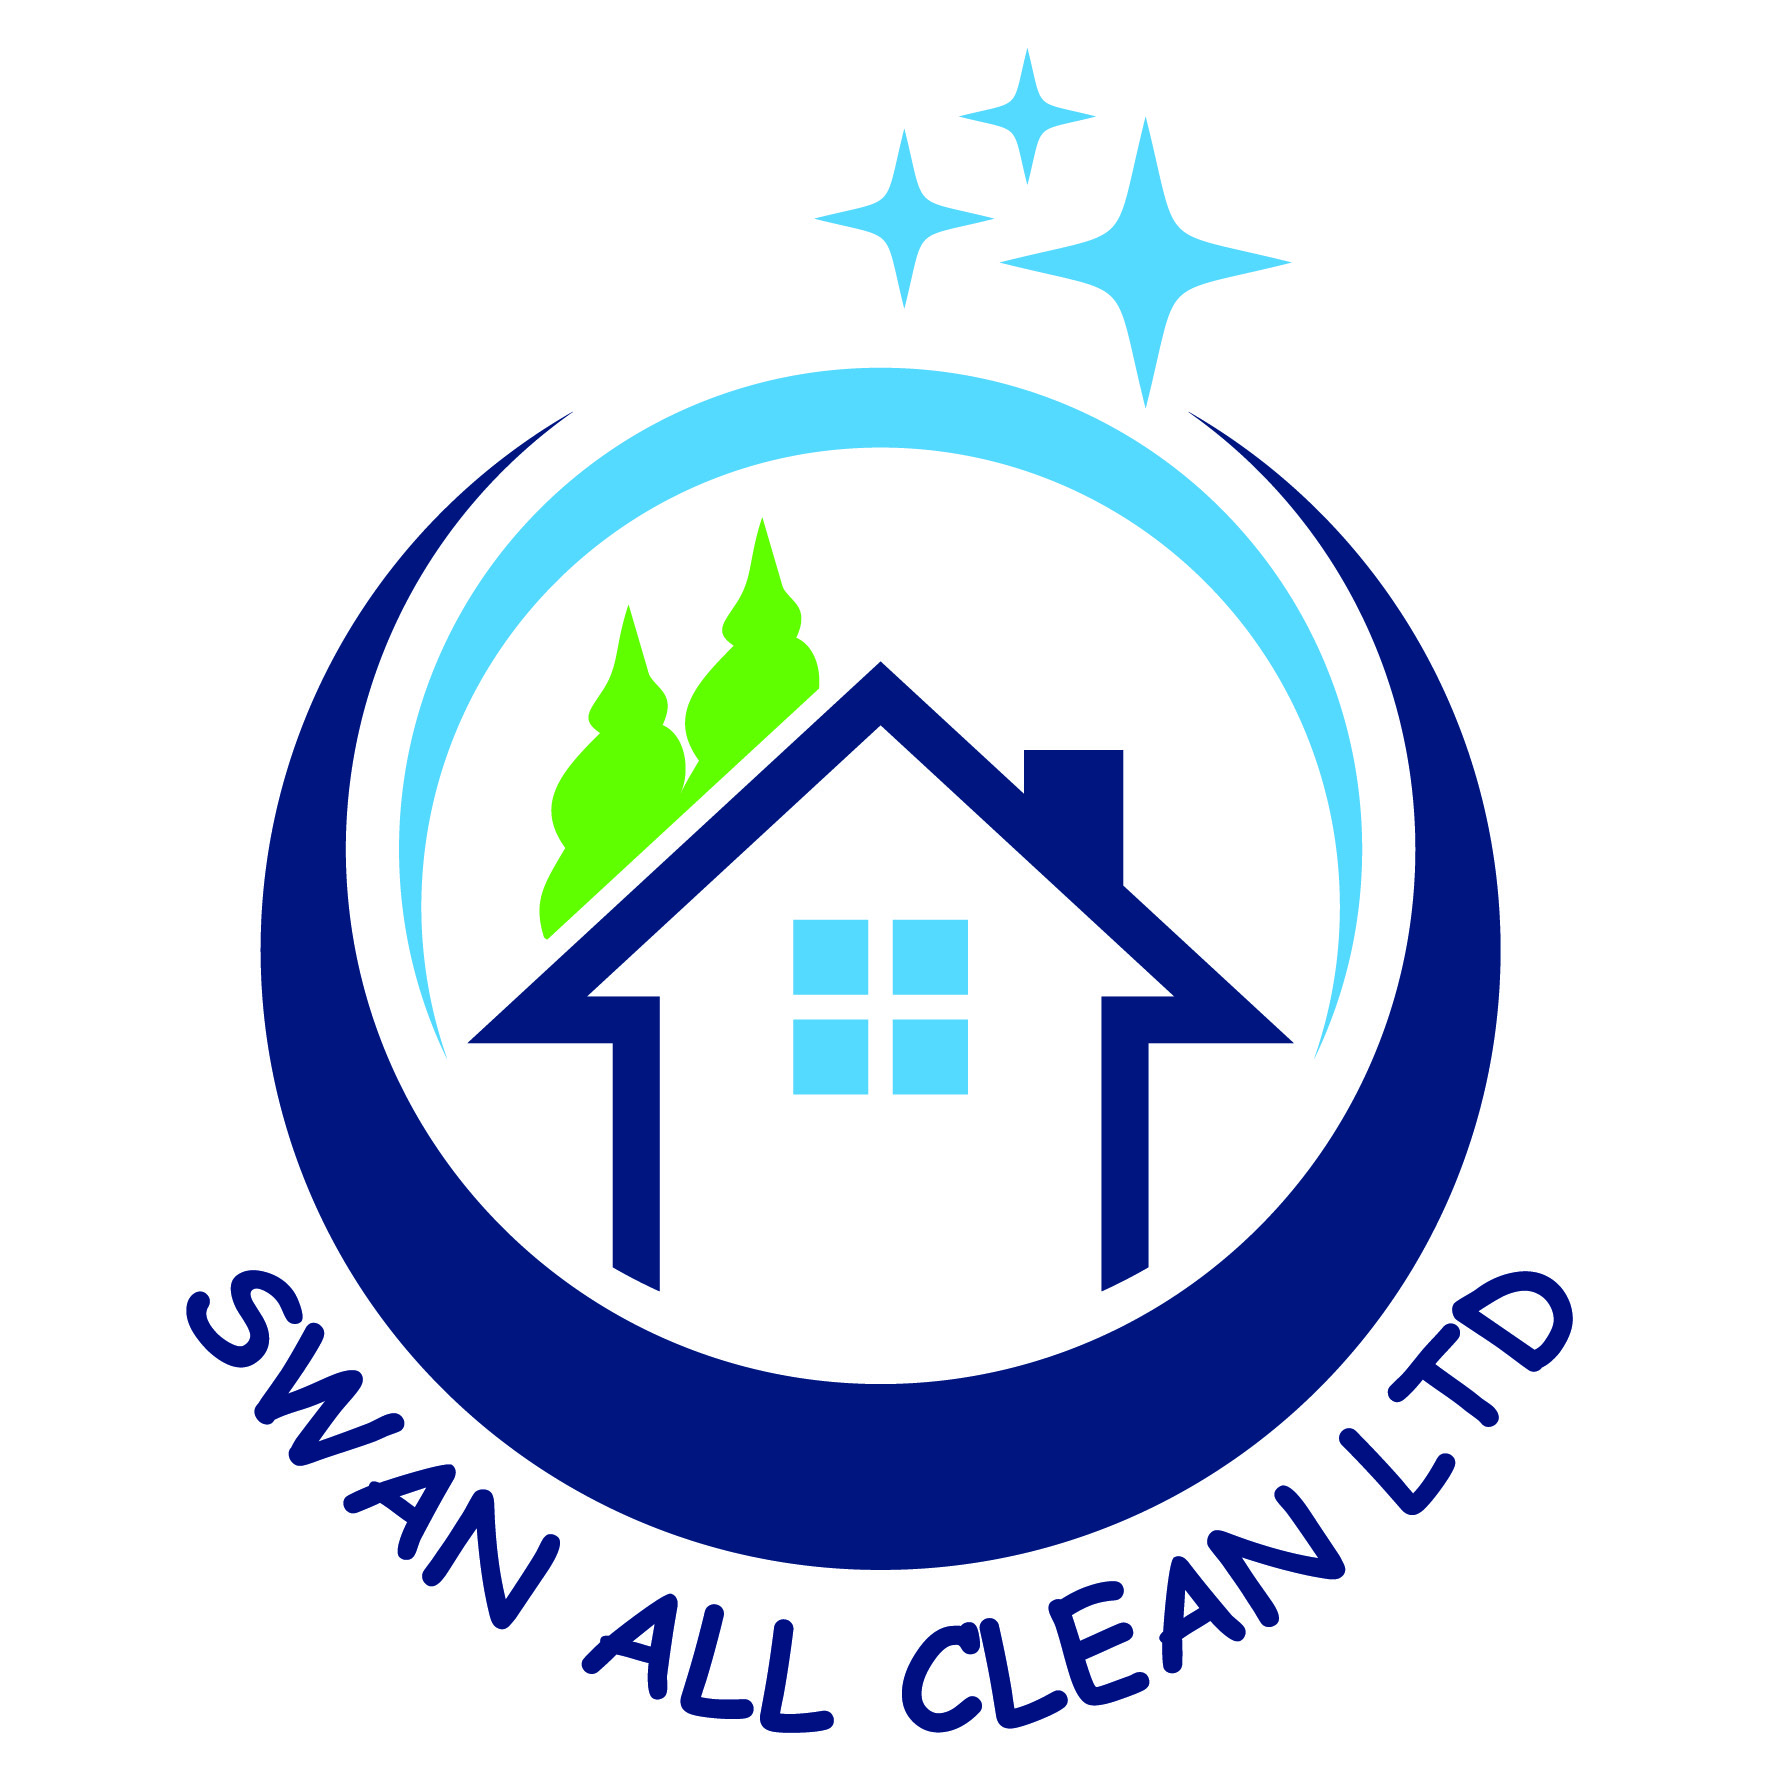 Swan All Clean Ltd.